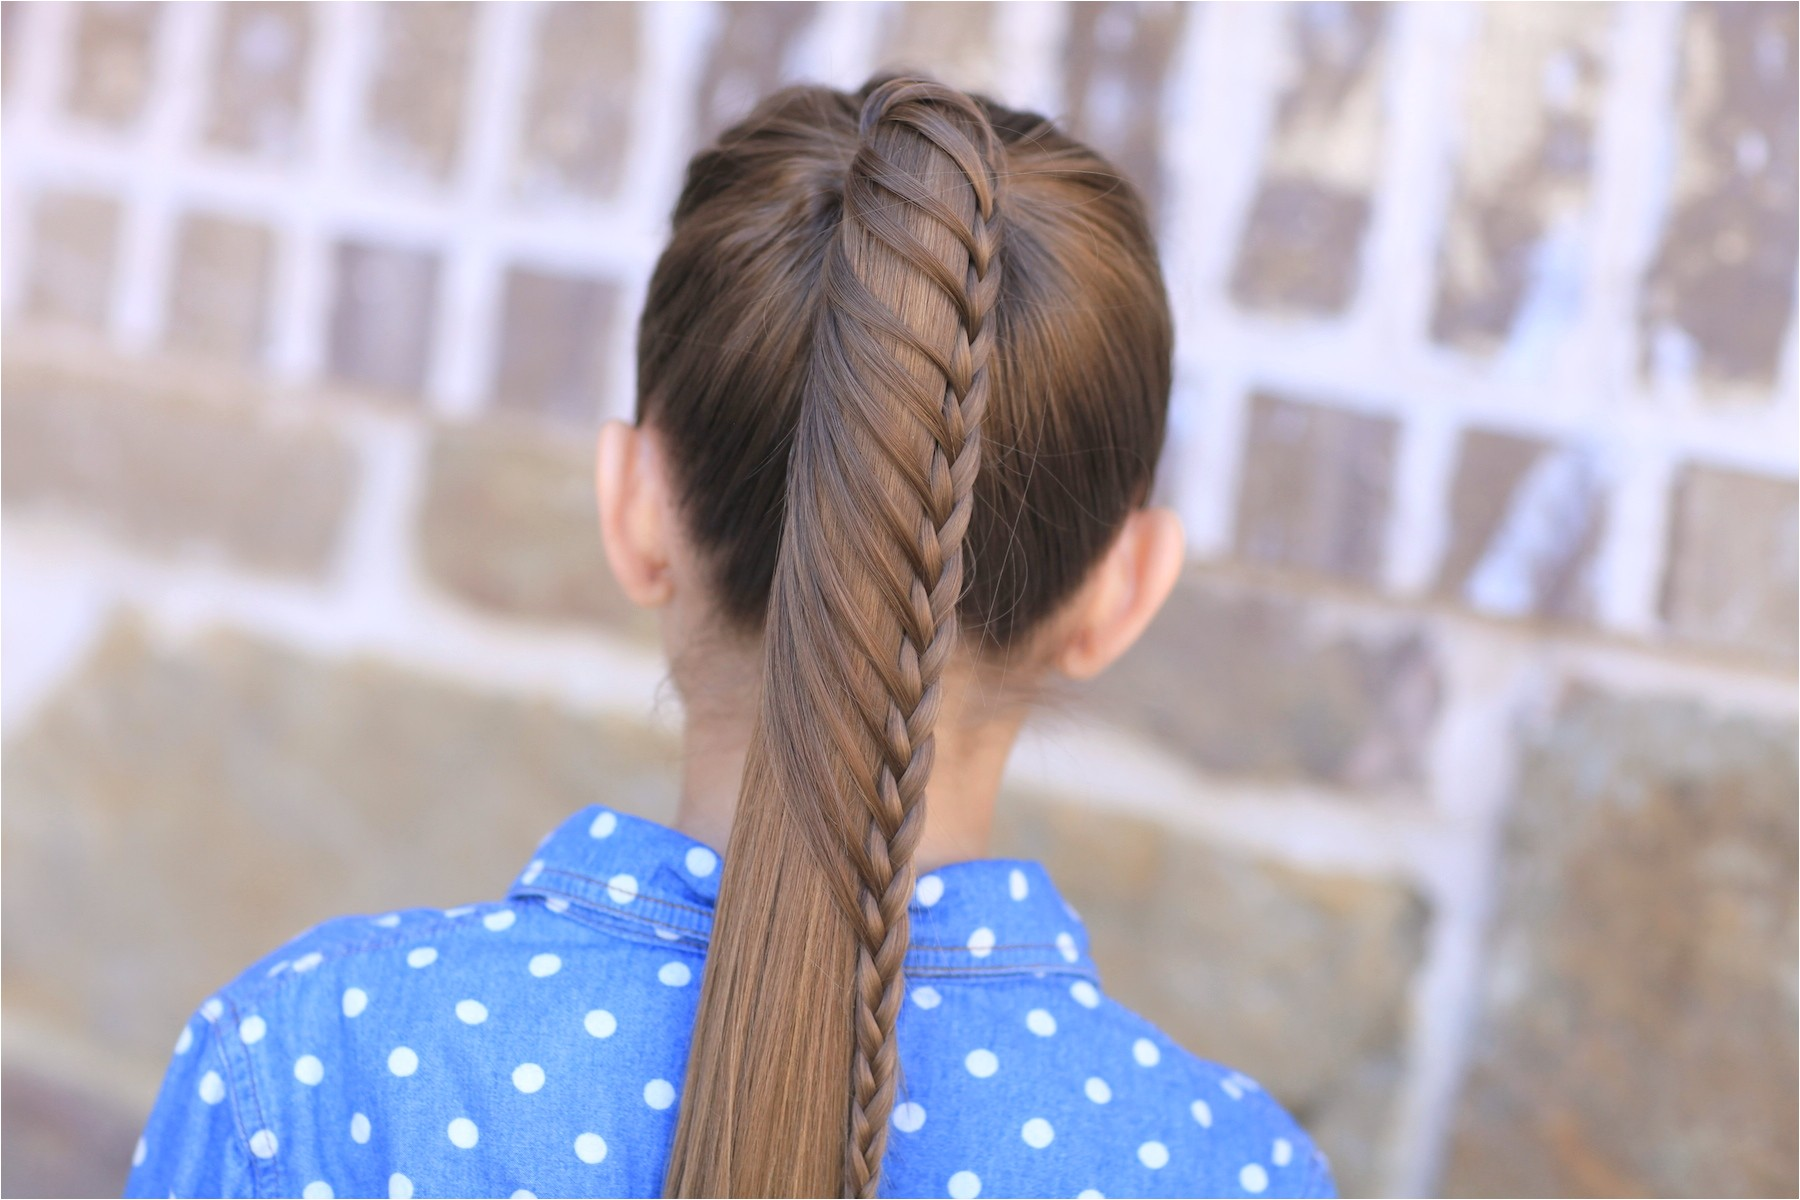 ideas for cute hairstyles for 10 year olds